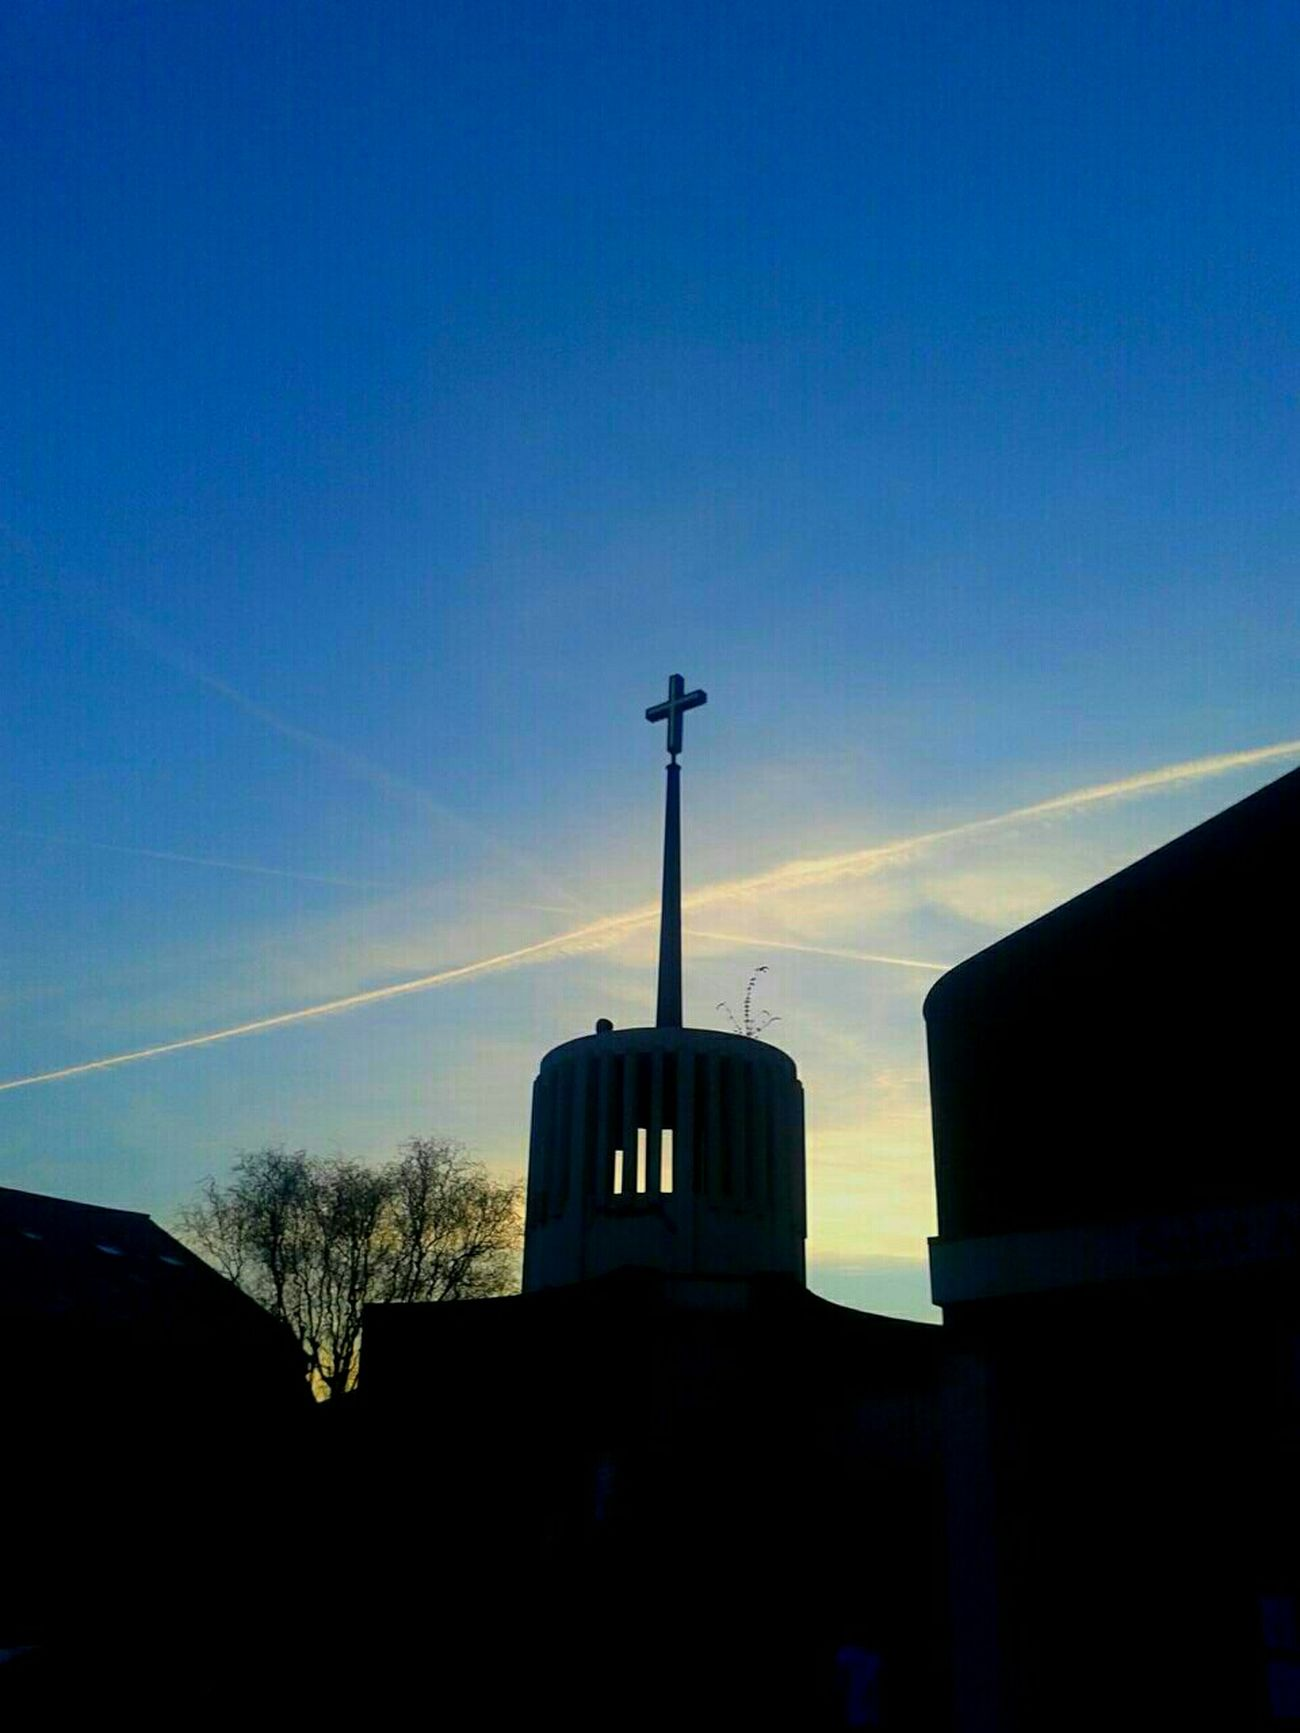 The cross of Saint Anselam's Church, London. London Beautiful Religion N Faith Religion Religious  HolySunday Evening Sky Cross Church Christianity First Eyeem Photo